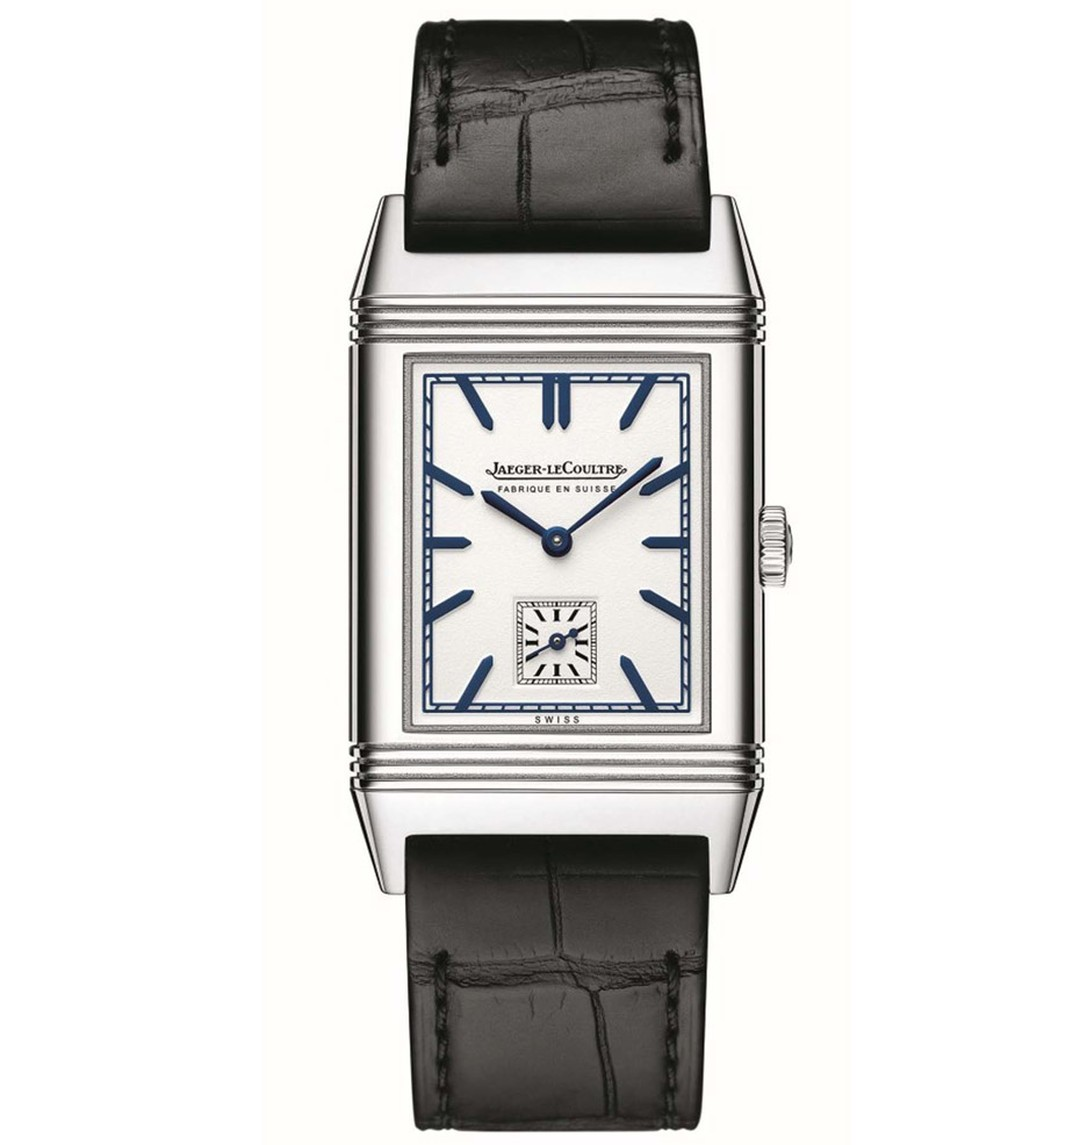 Jaeger-LeCoultre Grande Reverso Ultra-Thin 1948 watch